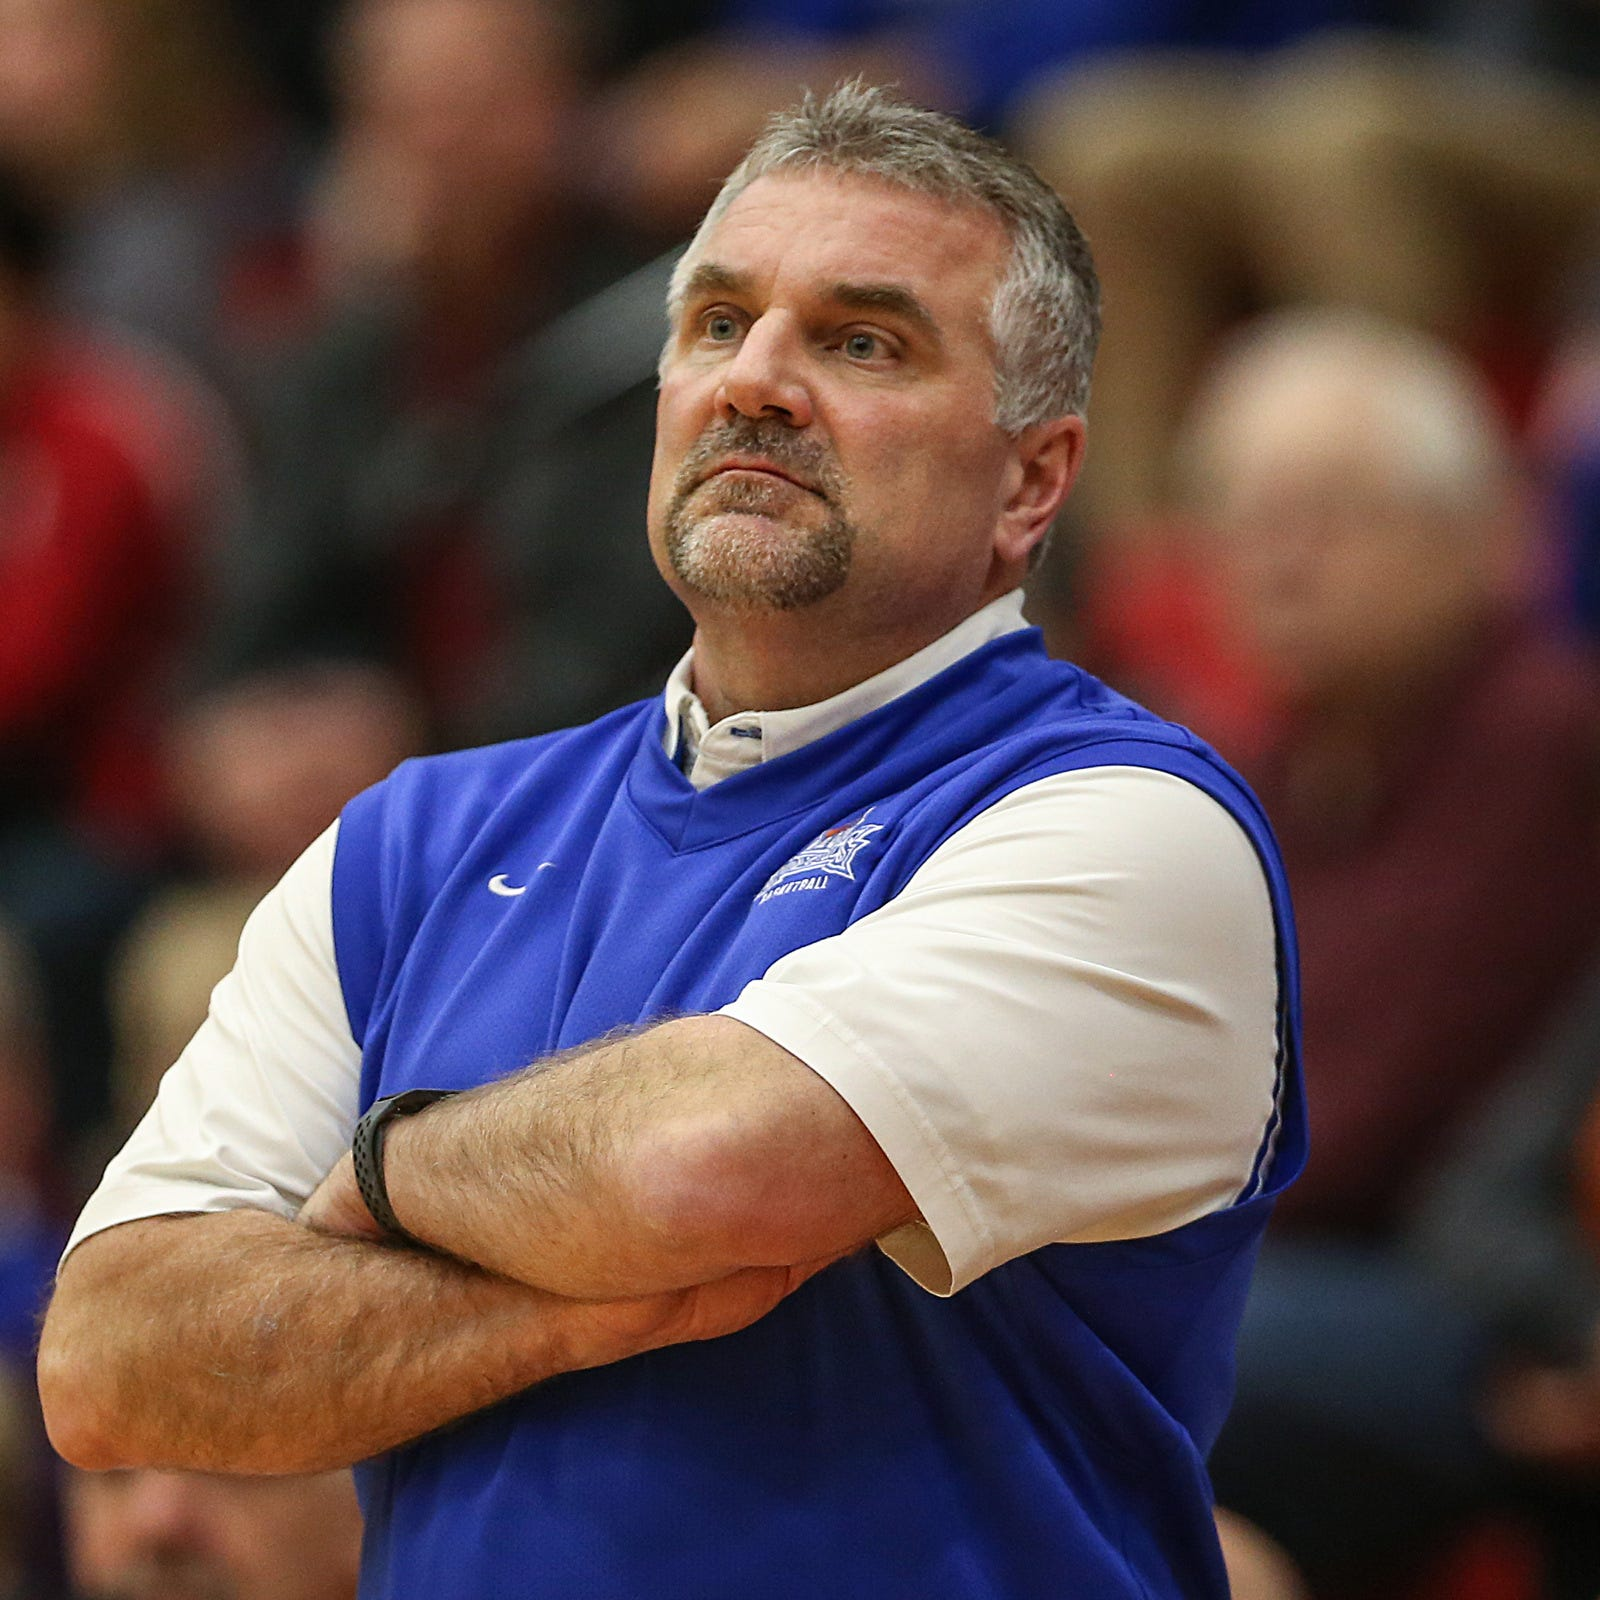 Chris Huppenthal is in his 14th season at Hamilton Southeastern.